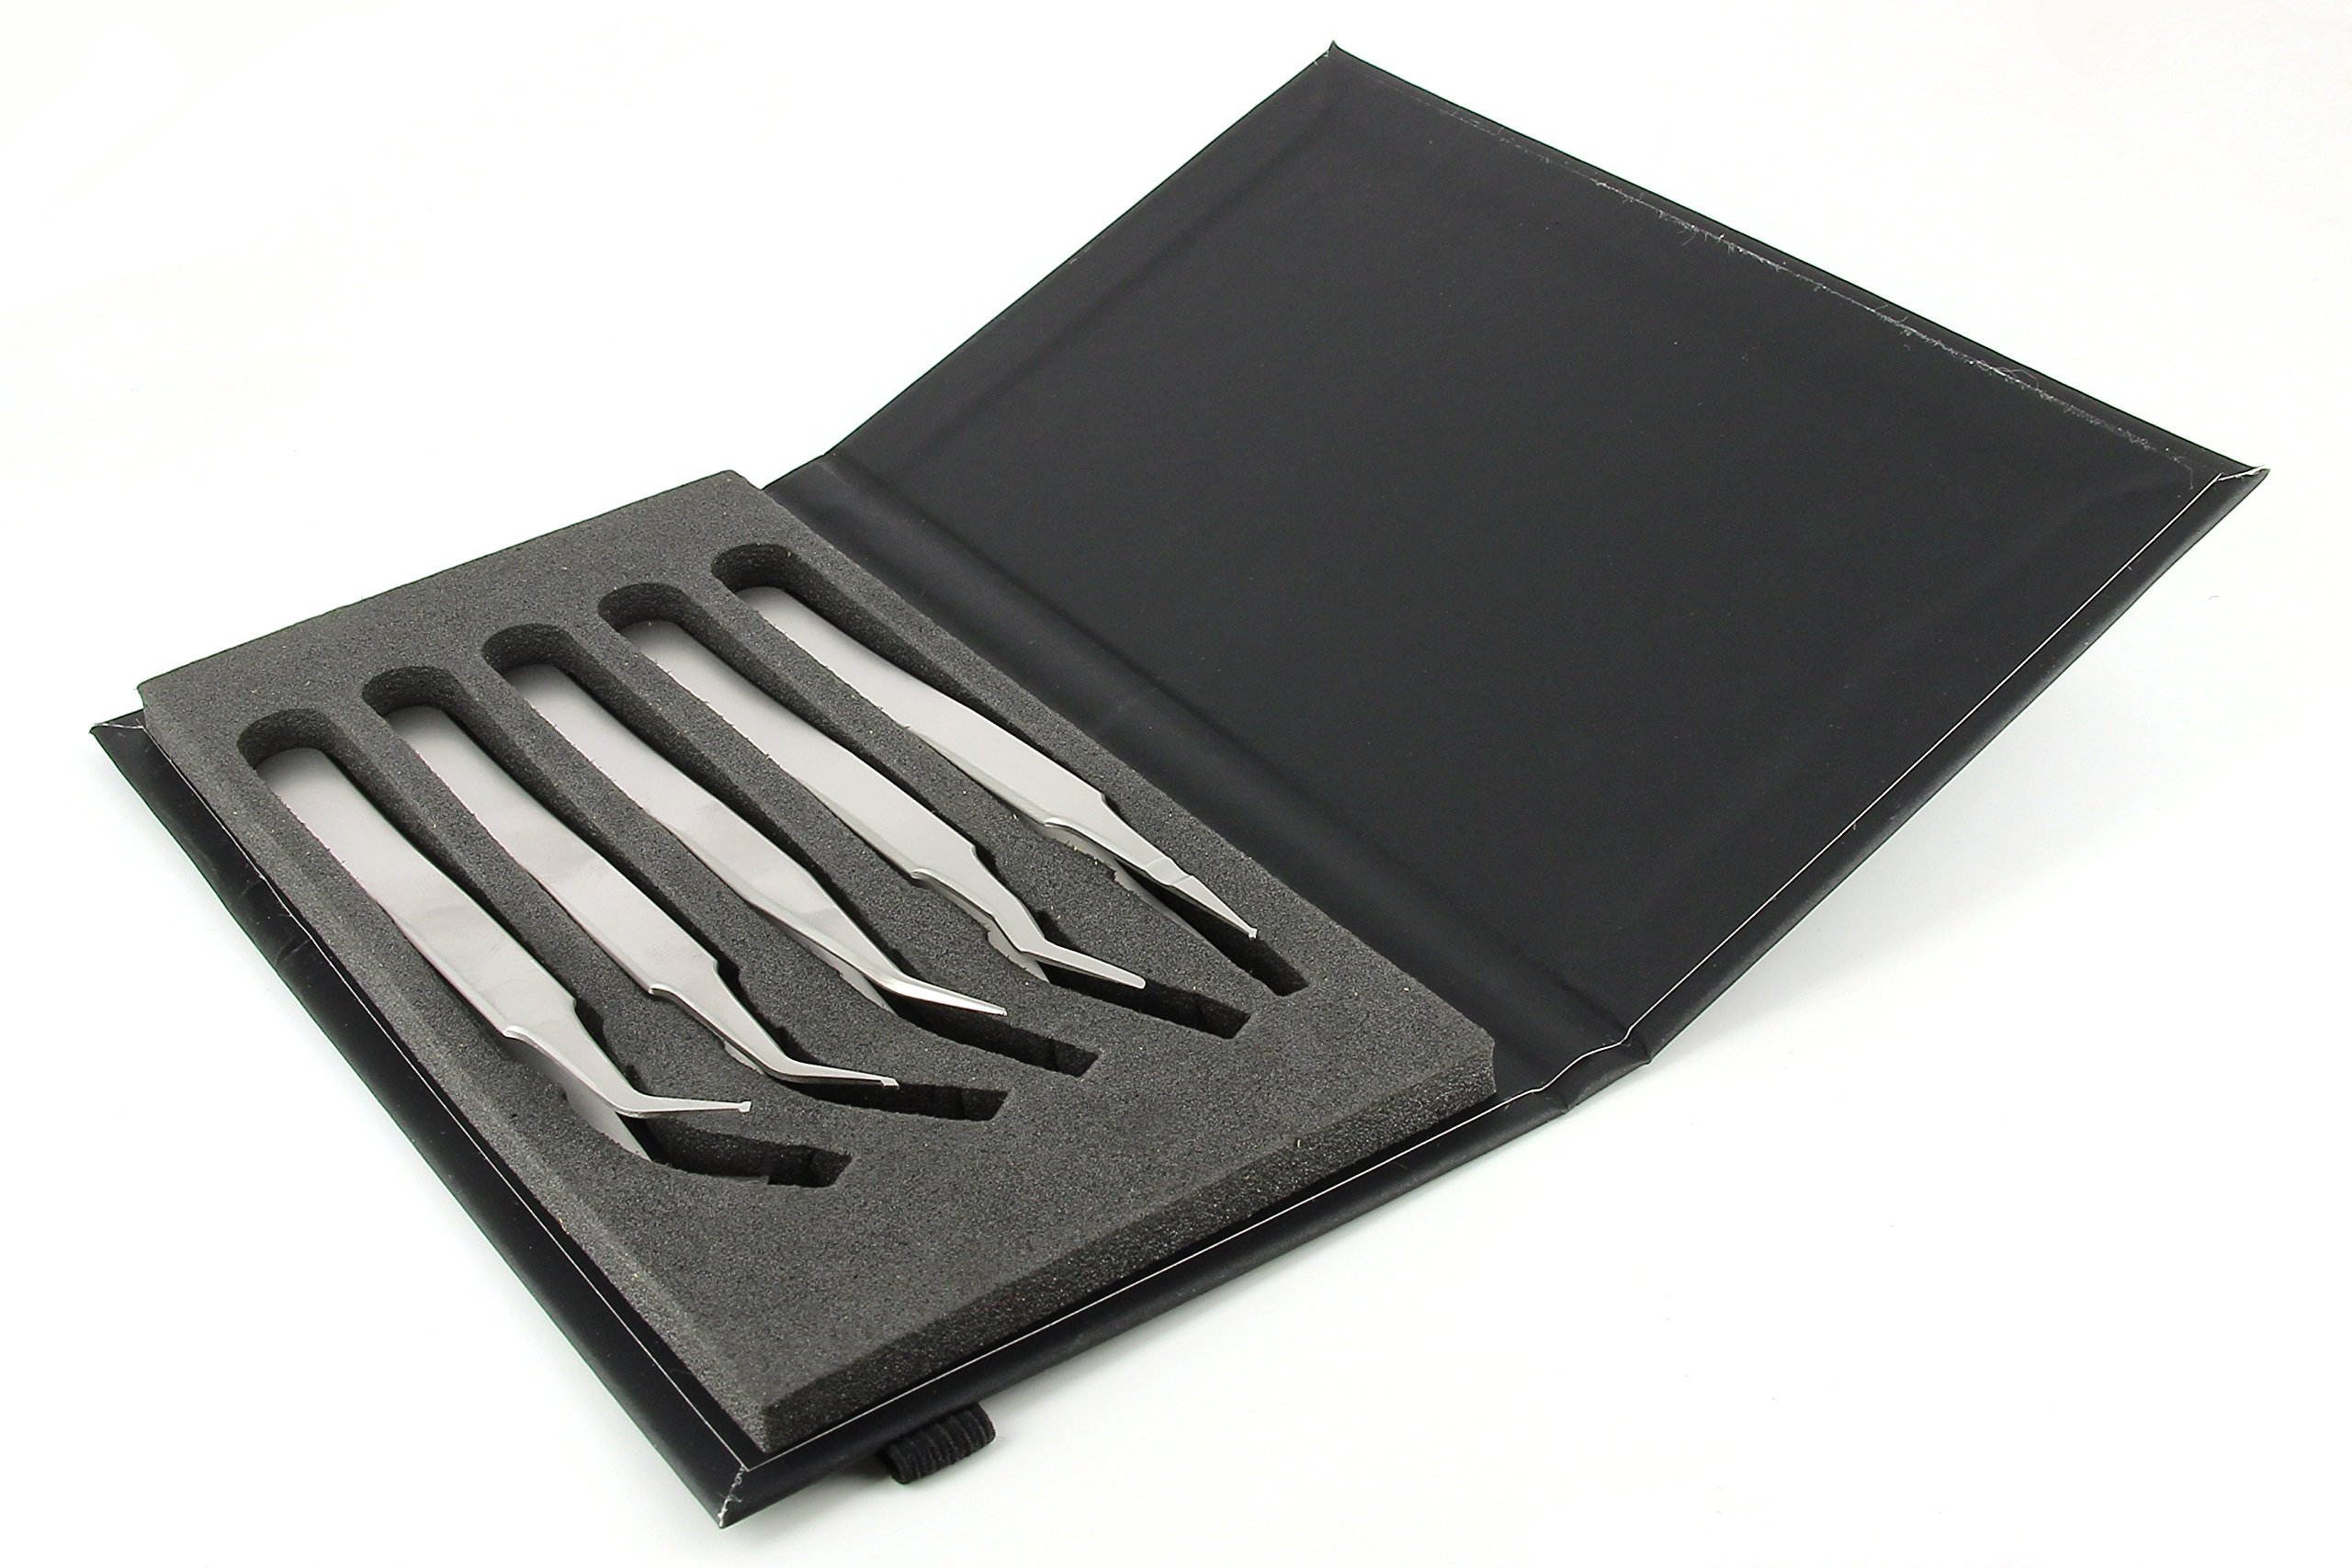 Kit of 5 SMD Tweezers by IDEAL-TEK AA ANTI HI TECH